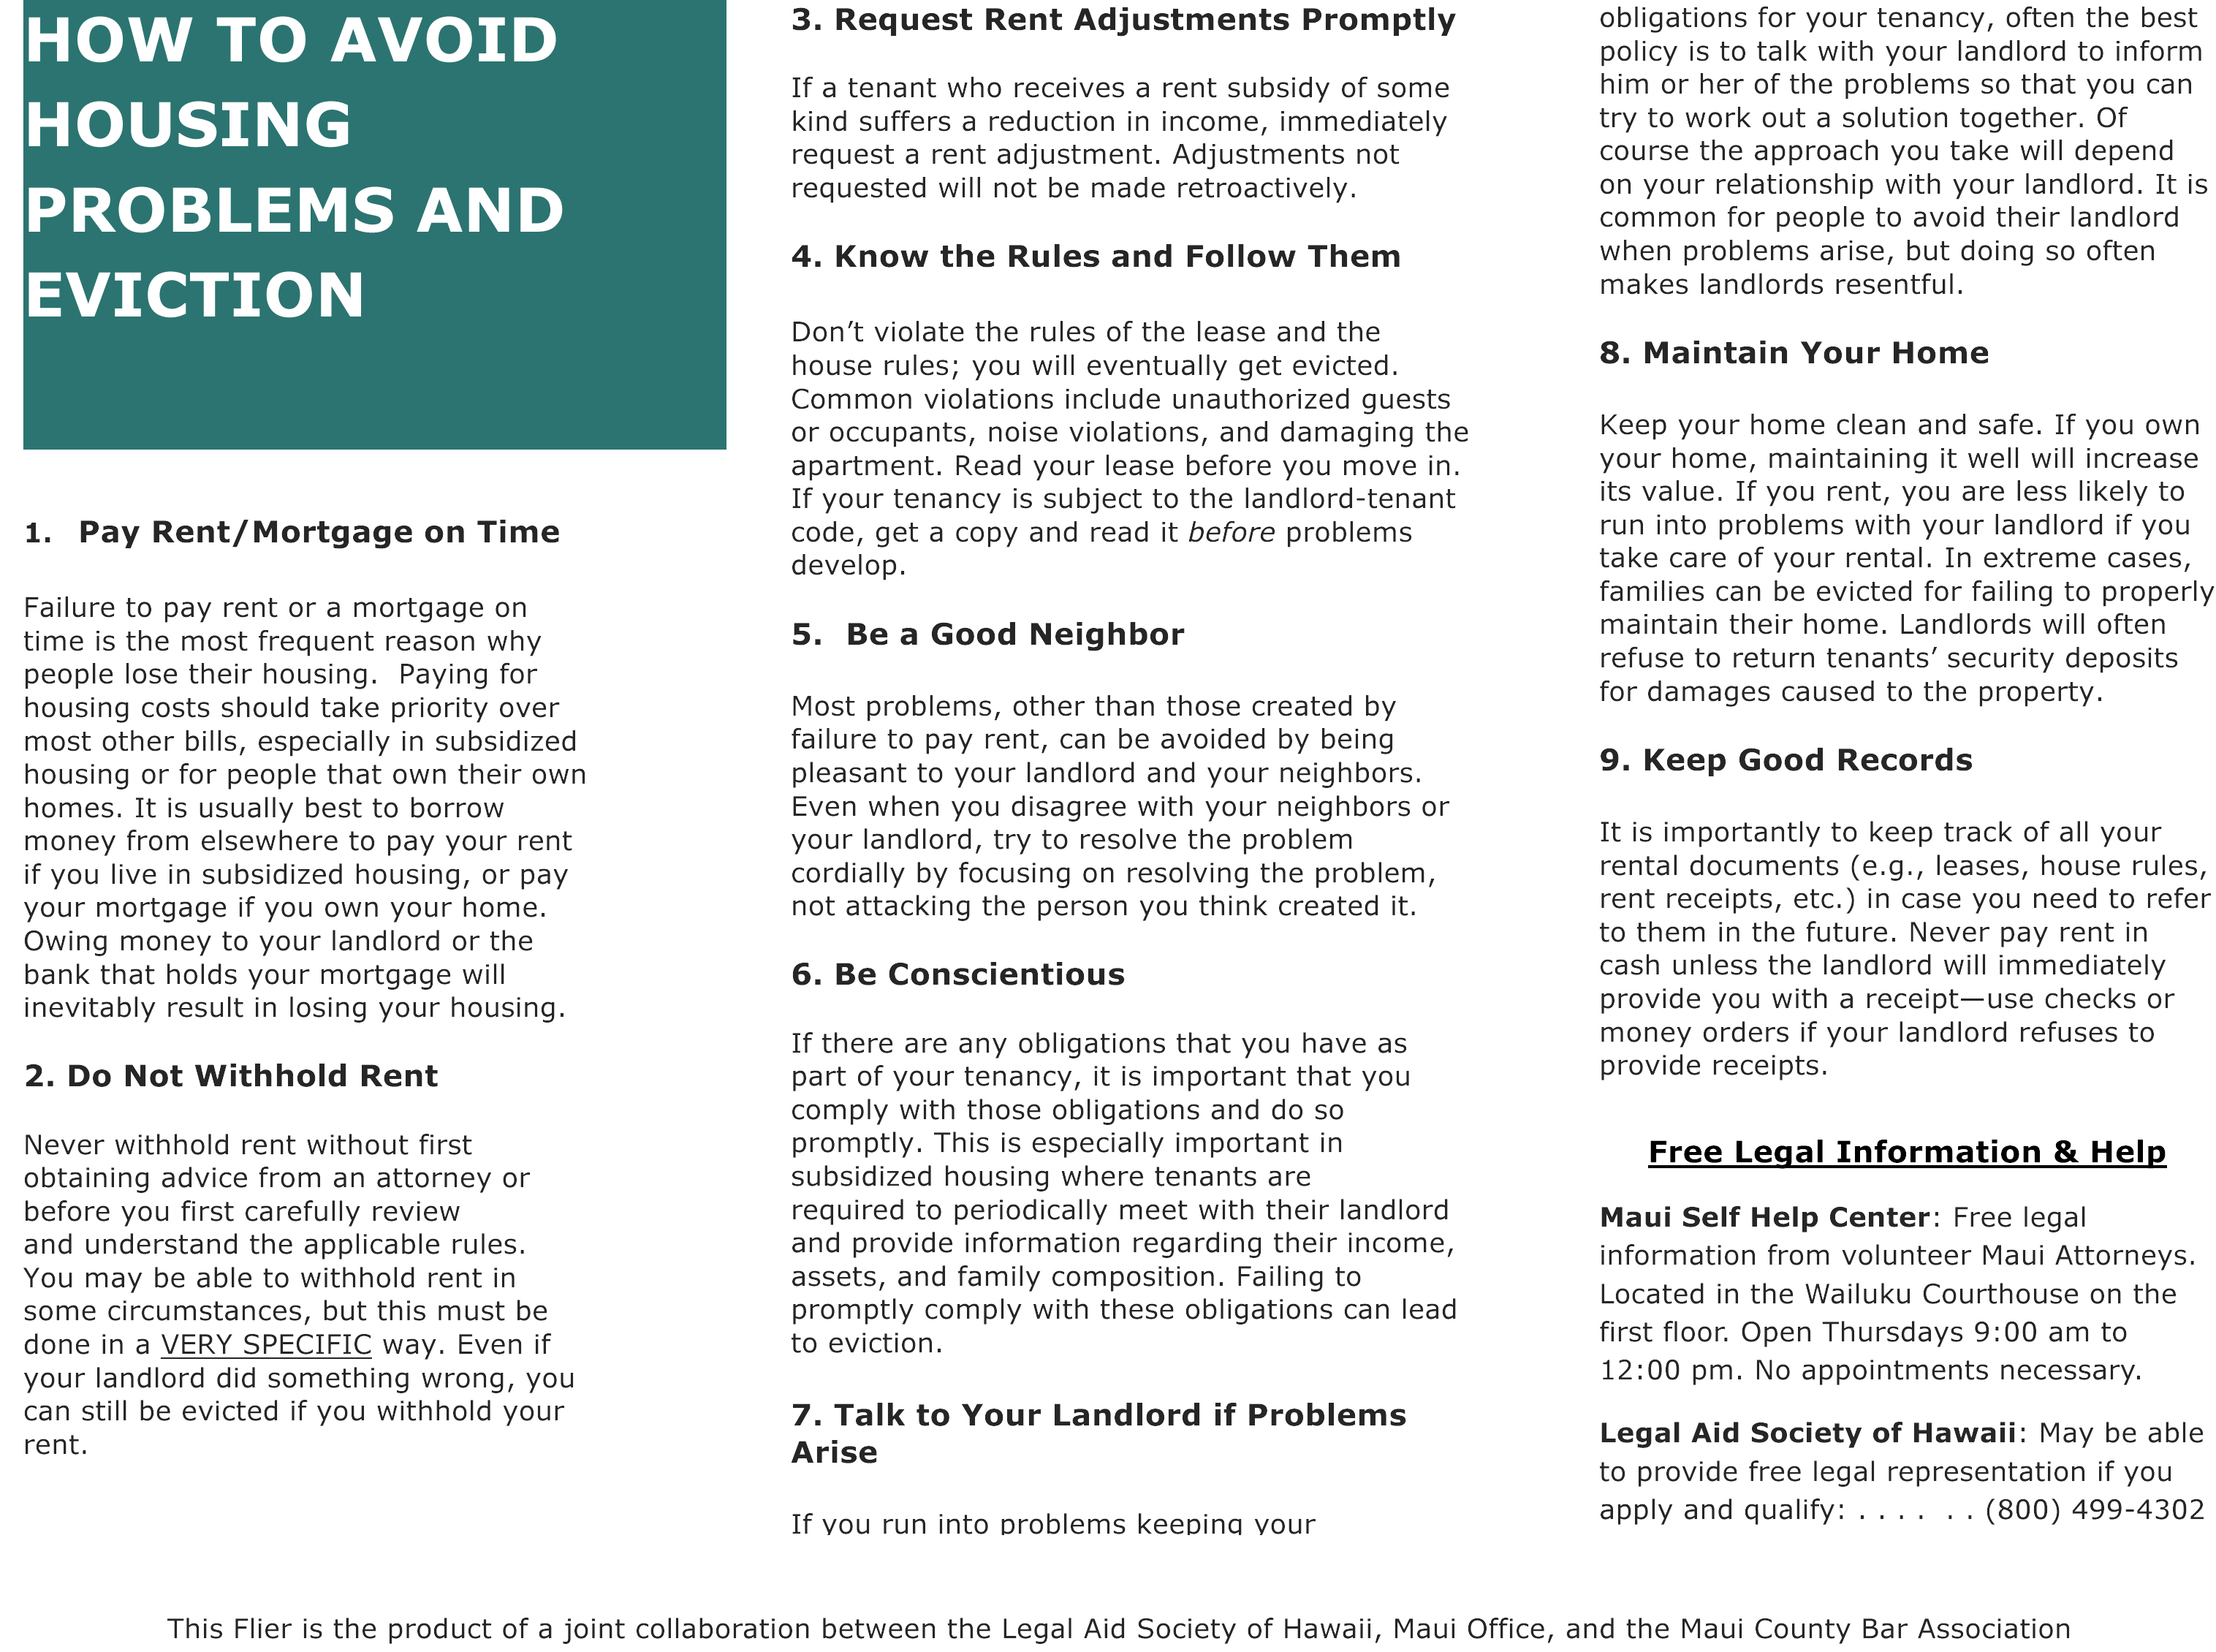 STAE Brochure Page 2. Click image to view in greater detail.